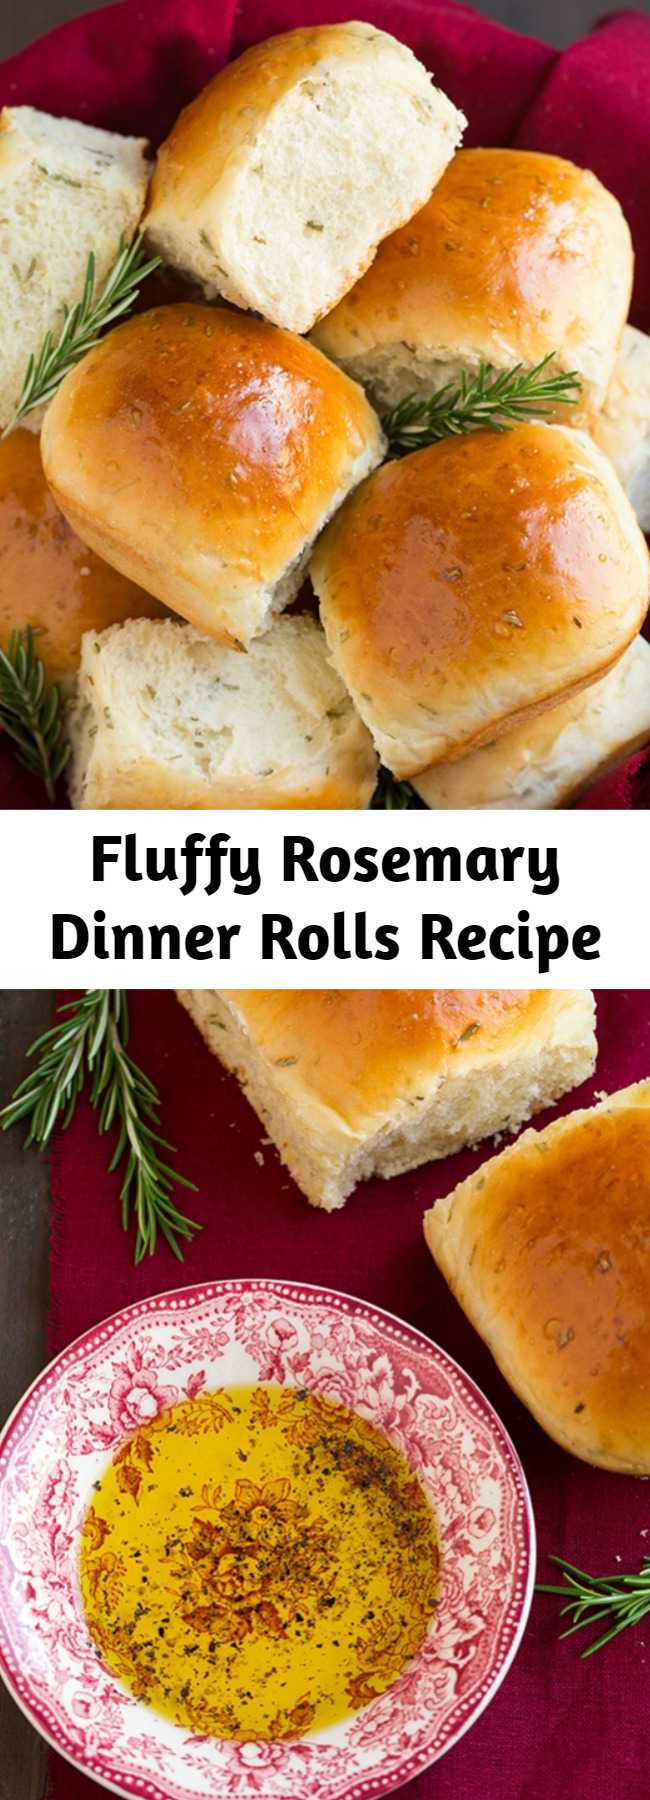 Fluffy Rosemary Dinner Rolls Recipe - The perfect roll recipe for the holidays! Soft and fluffy and deliciously flavored with fresh rosemary.